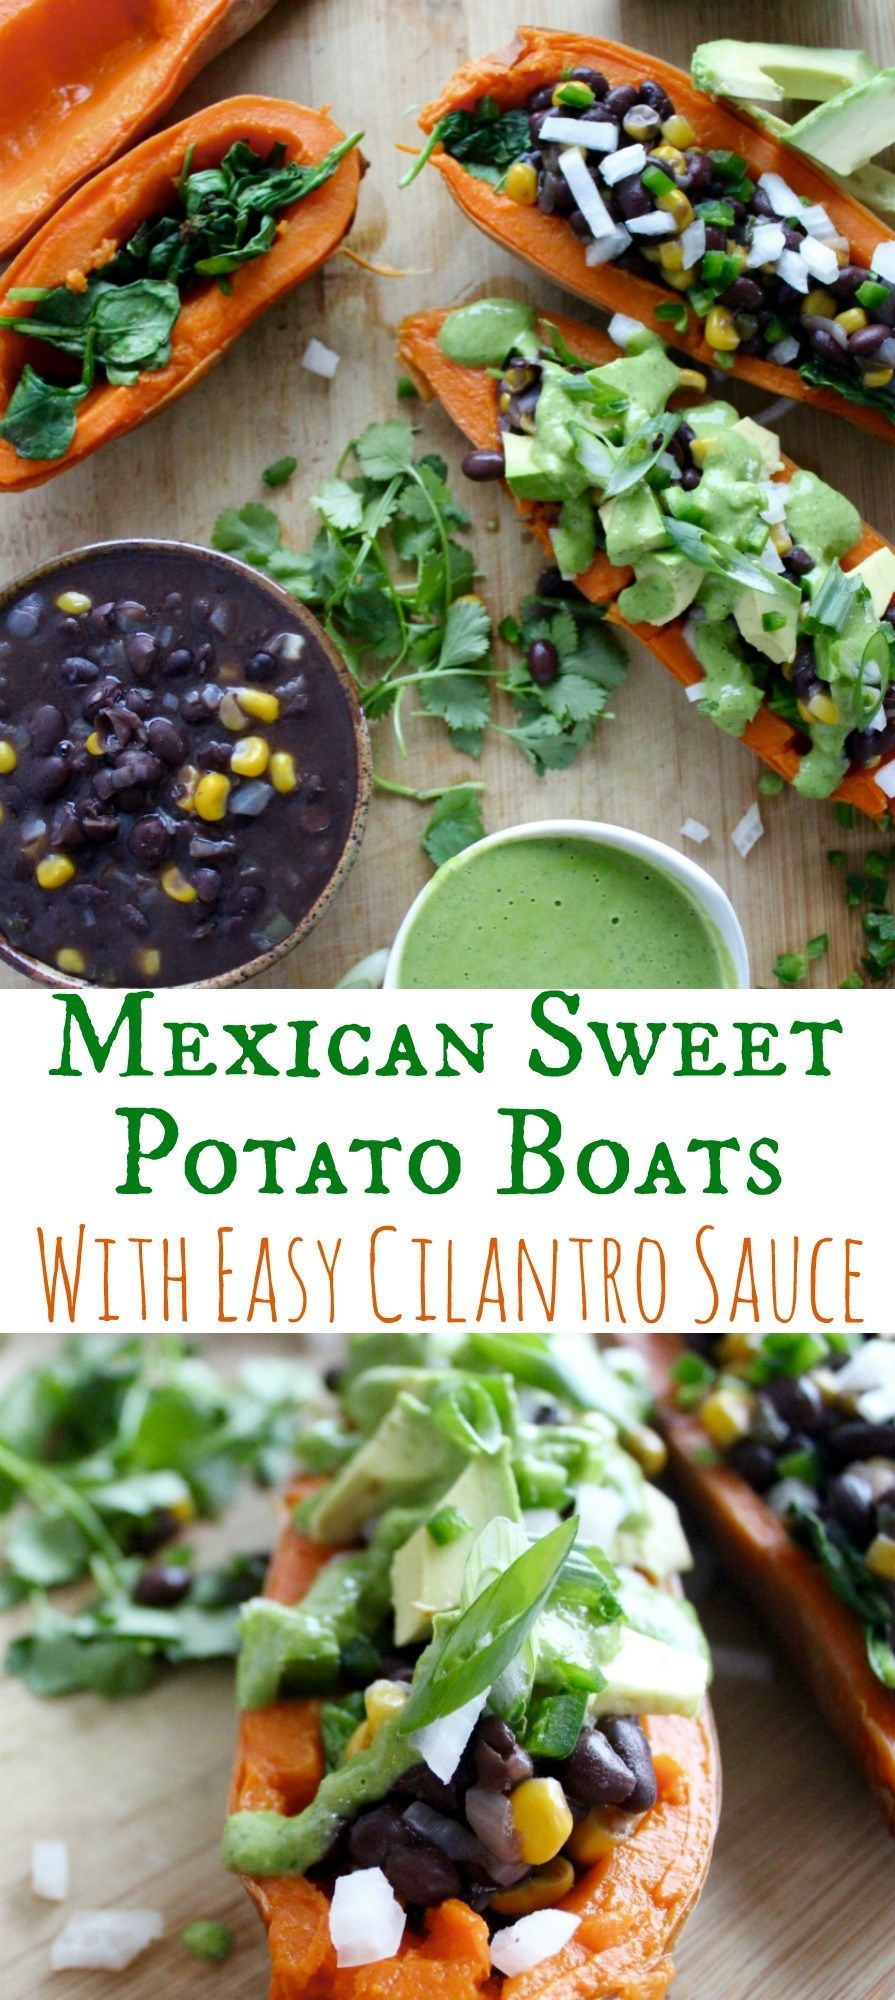 Mexican Sweet Potato Boats with Cilantro Sauce #cilantrosauce